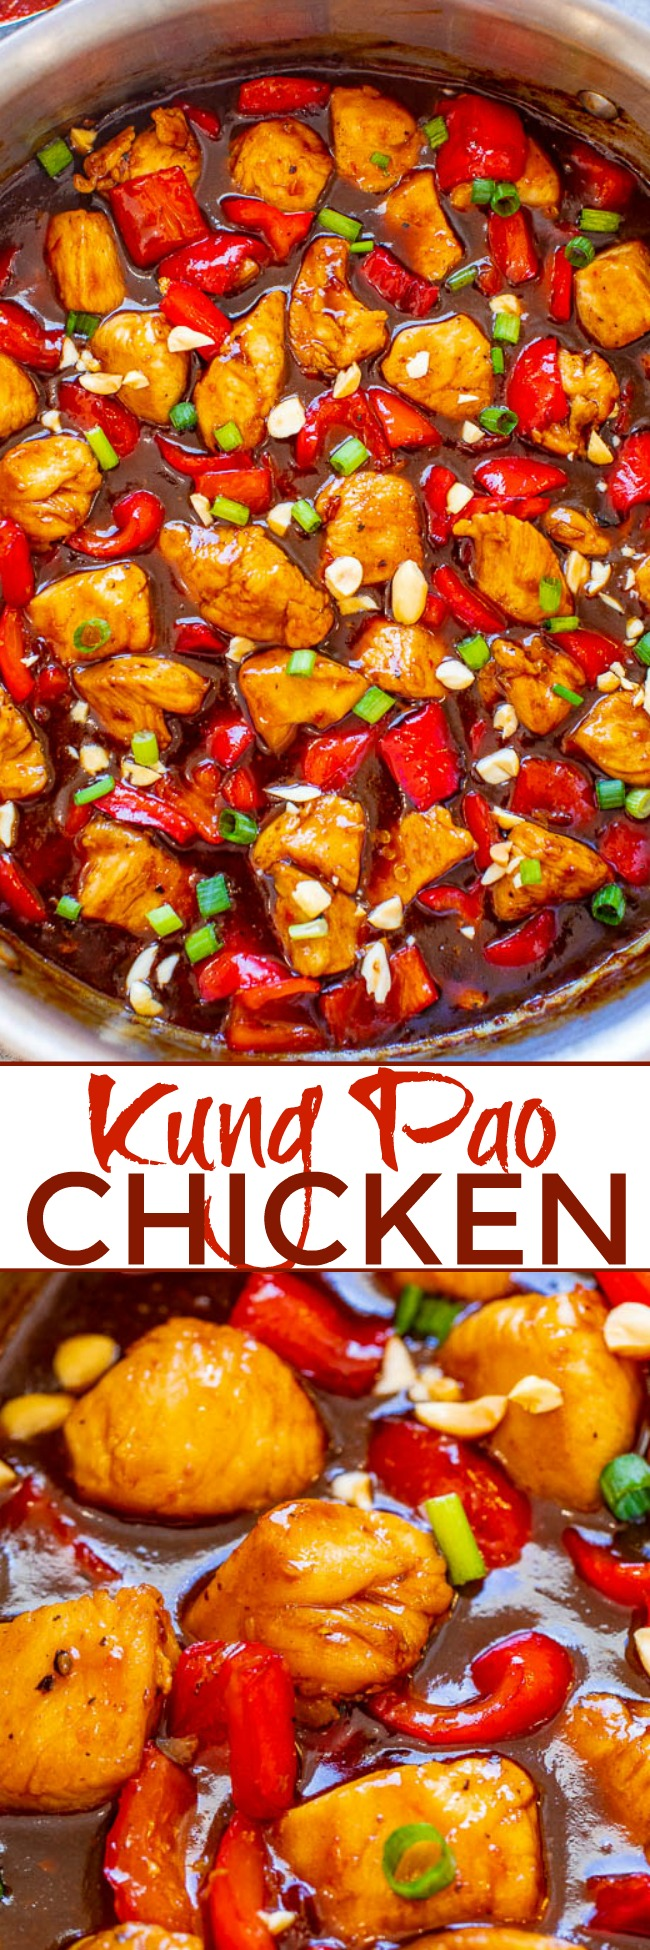 Kung Pao Chicken - An easy BETTER-THAN-TAKEOUT recipe with juicy chicken and such a flavorful sauce!! Don't call for takeout when you can make this HEALTHIER version at home in 20 minutes! So AUTHENTIC tasting!!